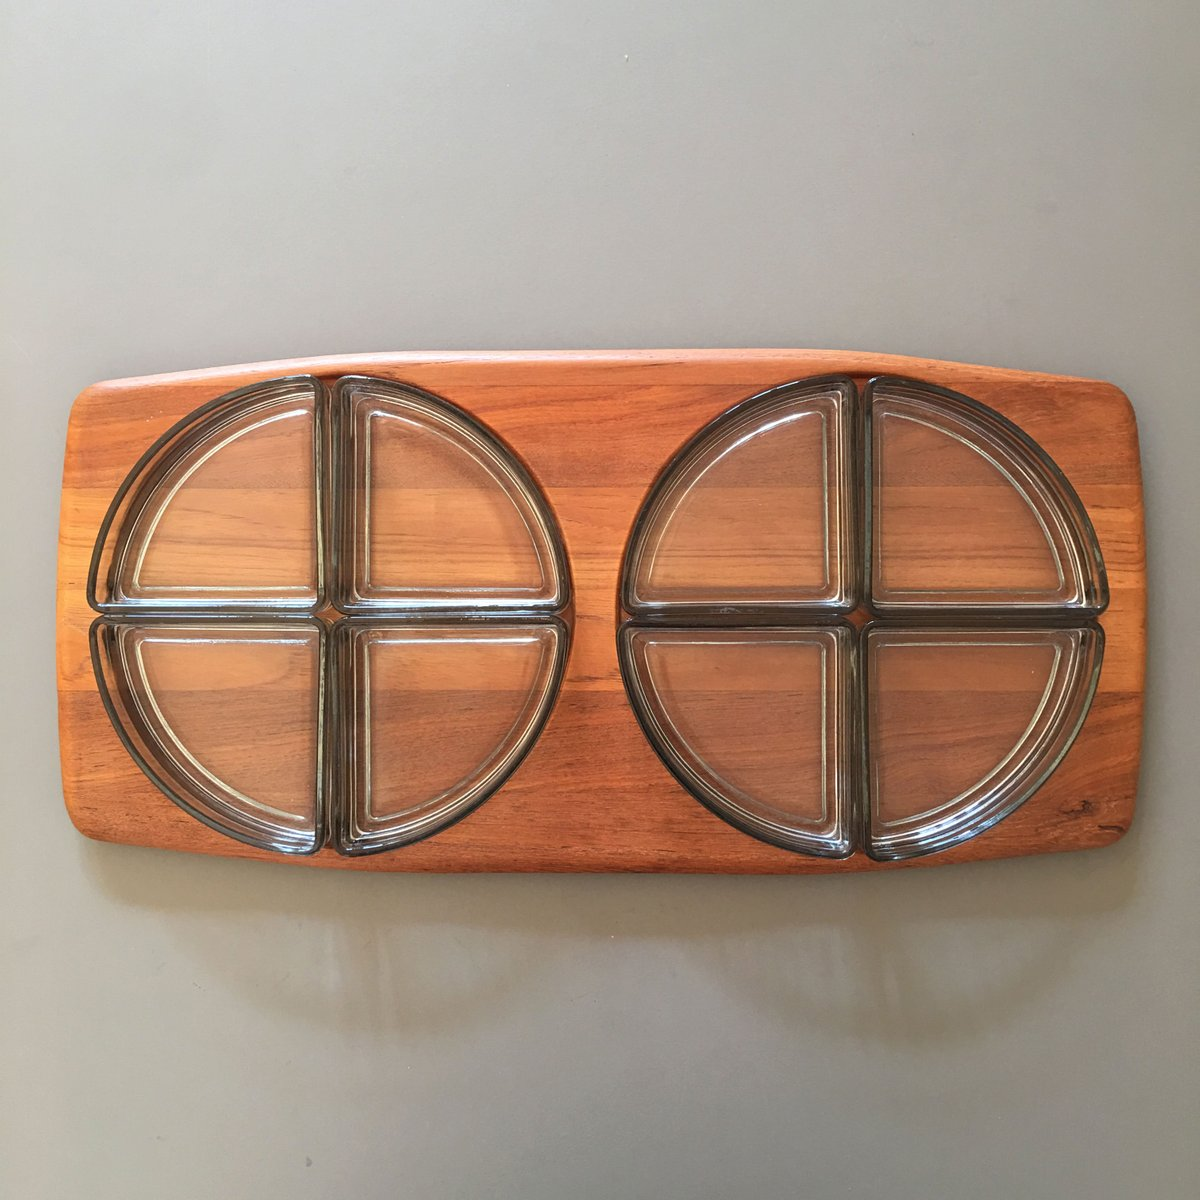 Vintage Danish Tray from Digsmed, 1964 for sale at Pamono